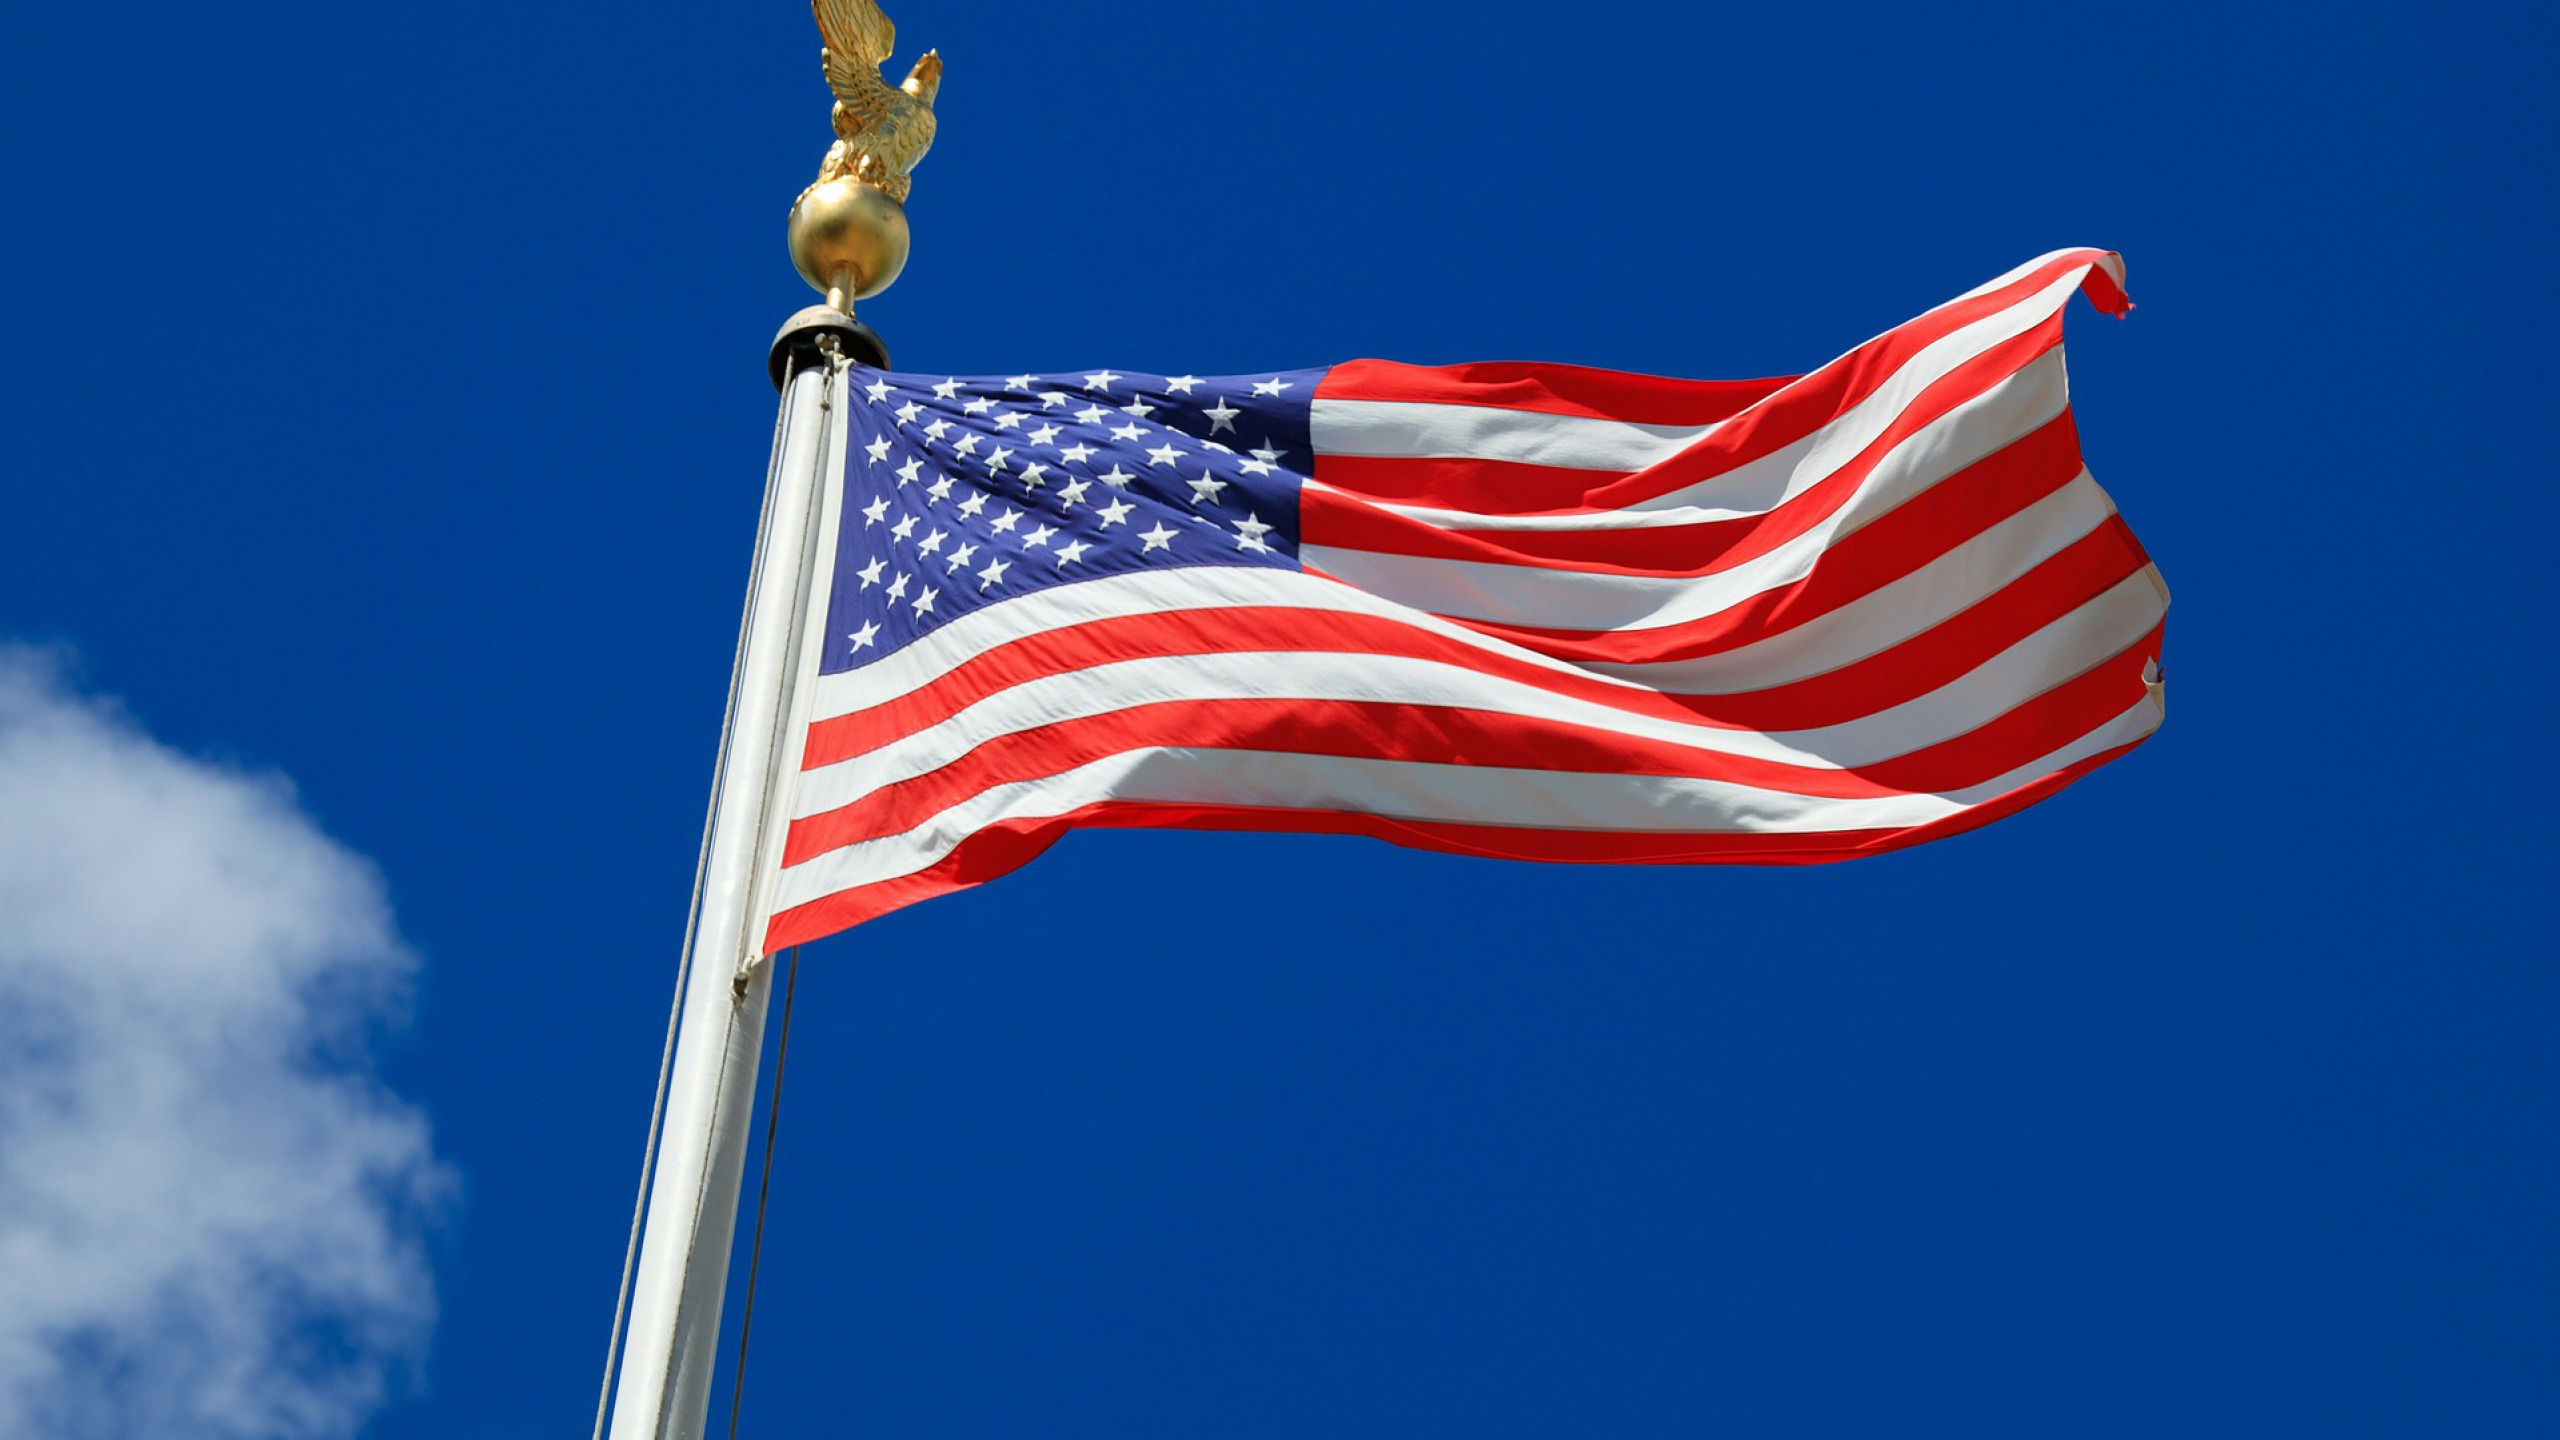 Desktop Pictures Of American Flag With Eagle Wallpaper